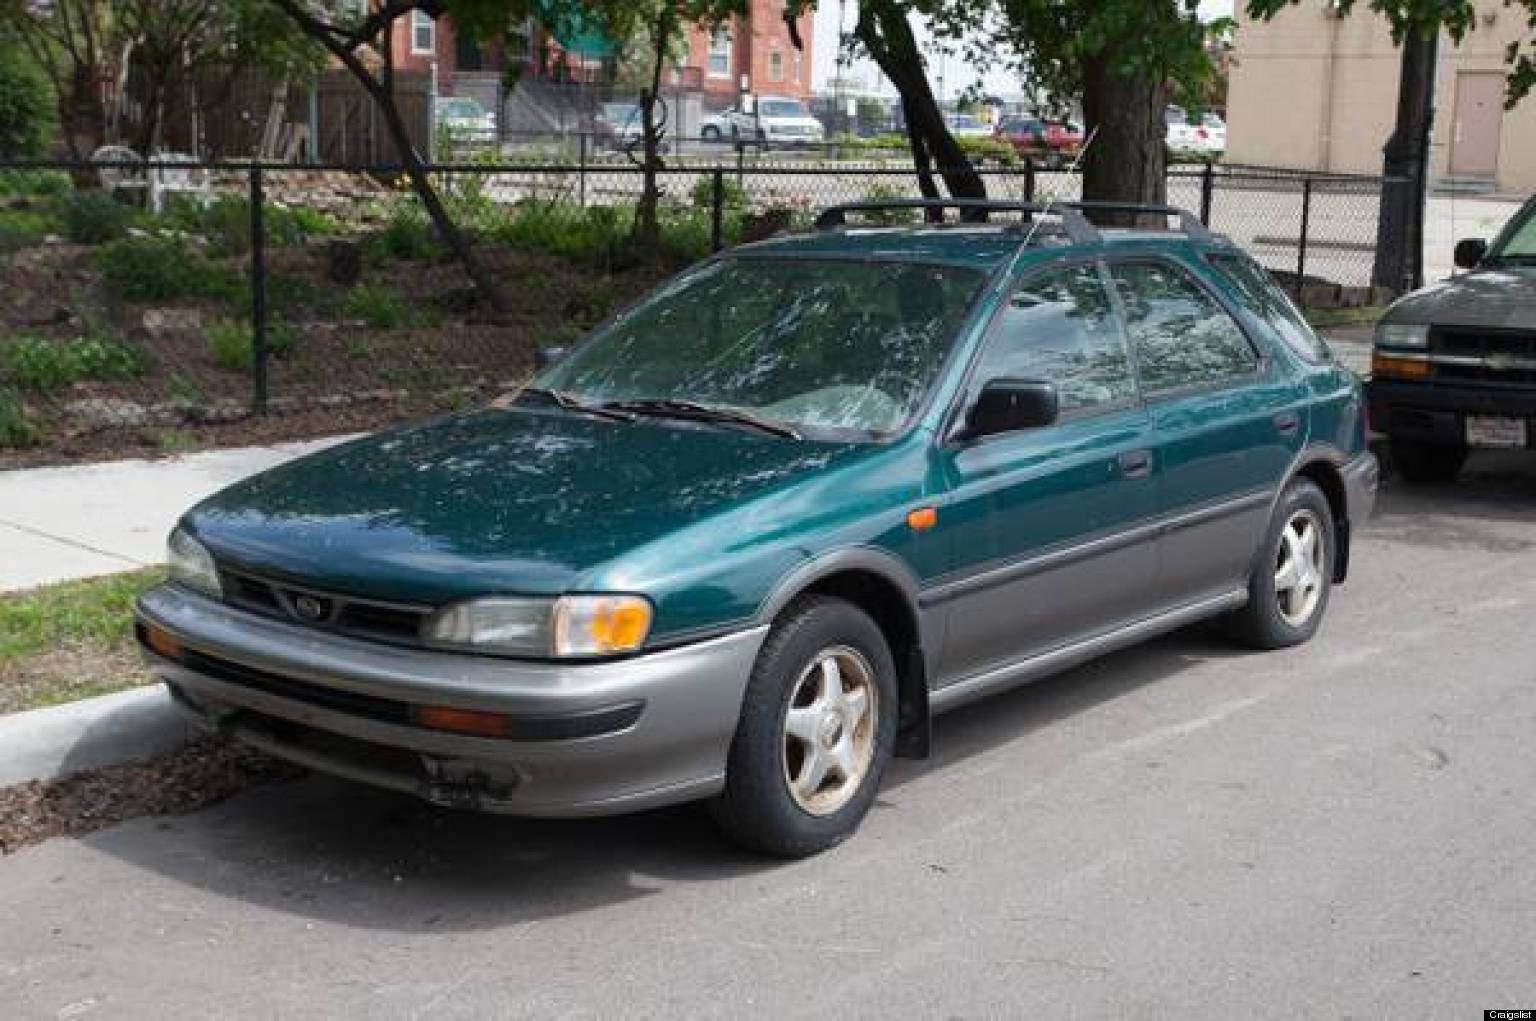 Subaru Craigslist Ad Is Brutally, Hilariously Honest About Used ...